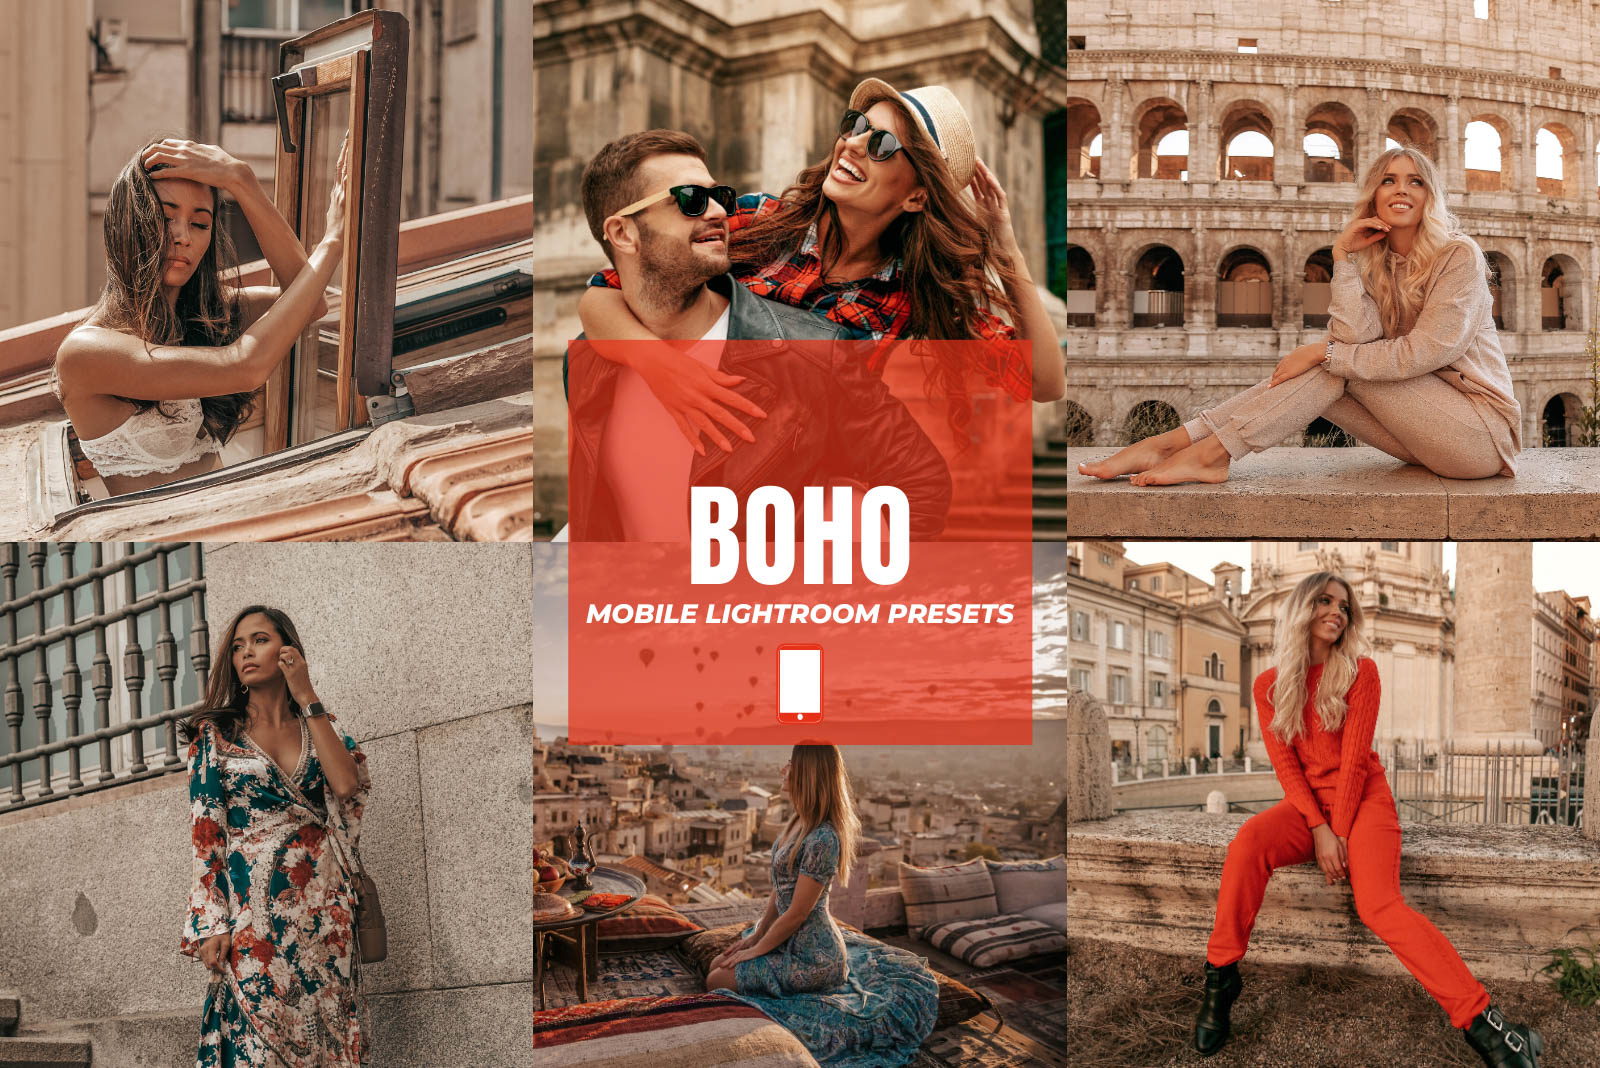 BOHO MOBILE LIGHTROOM PRESETS by The Viral Presets